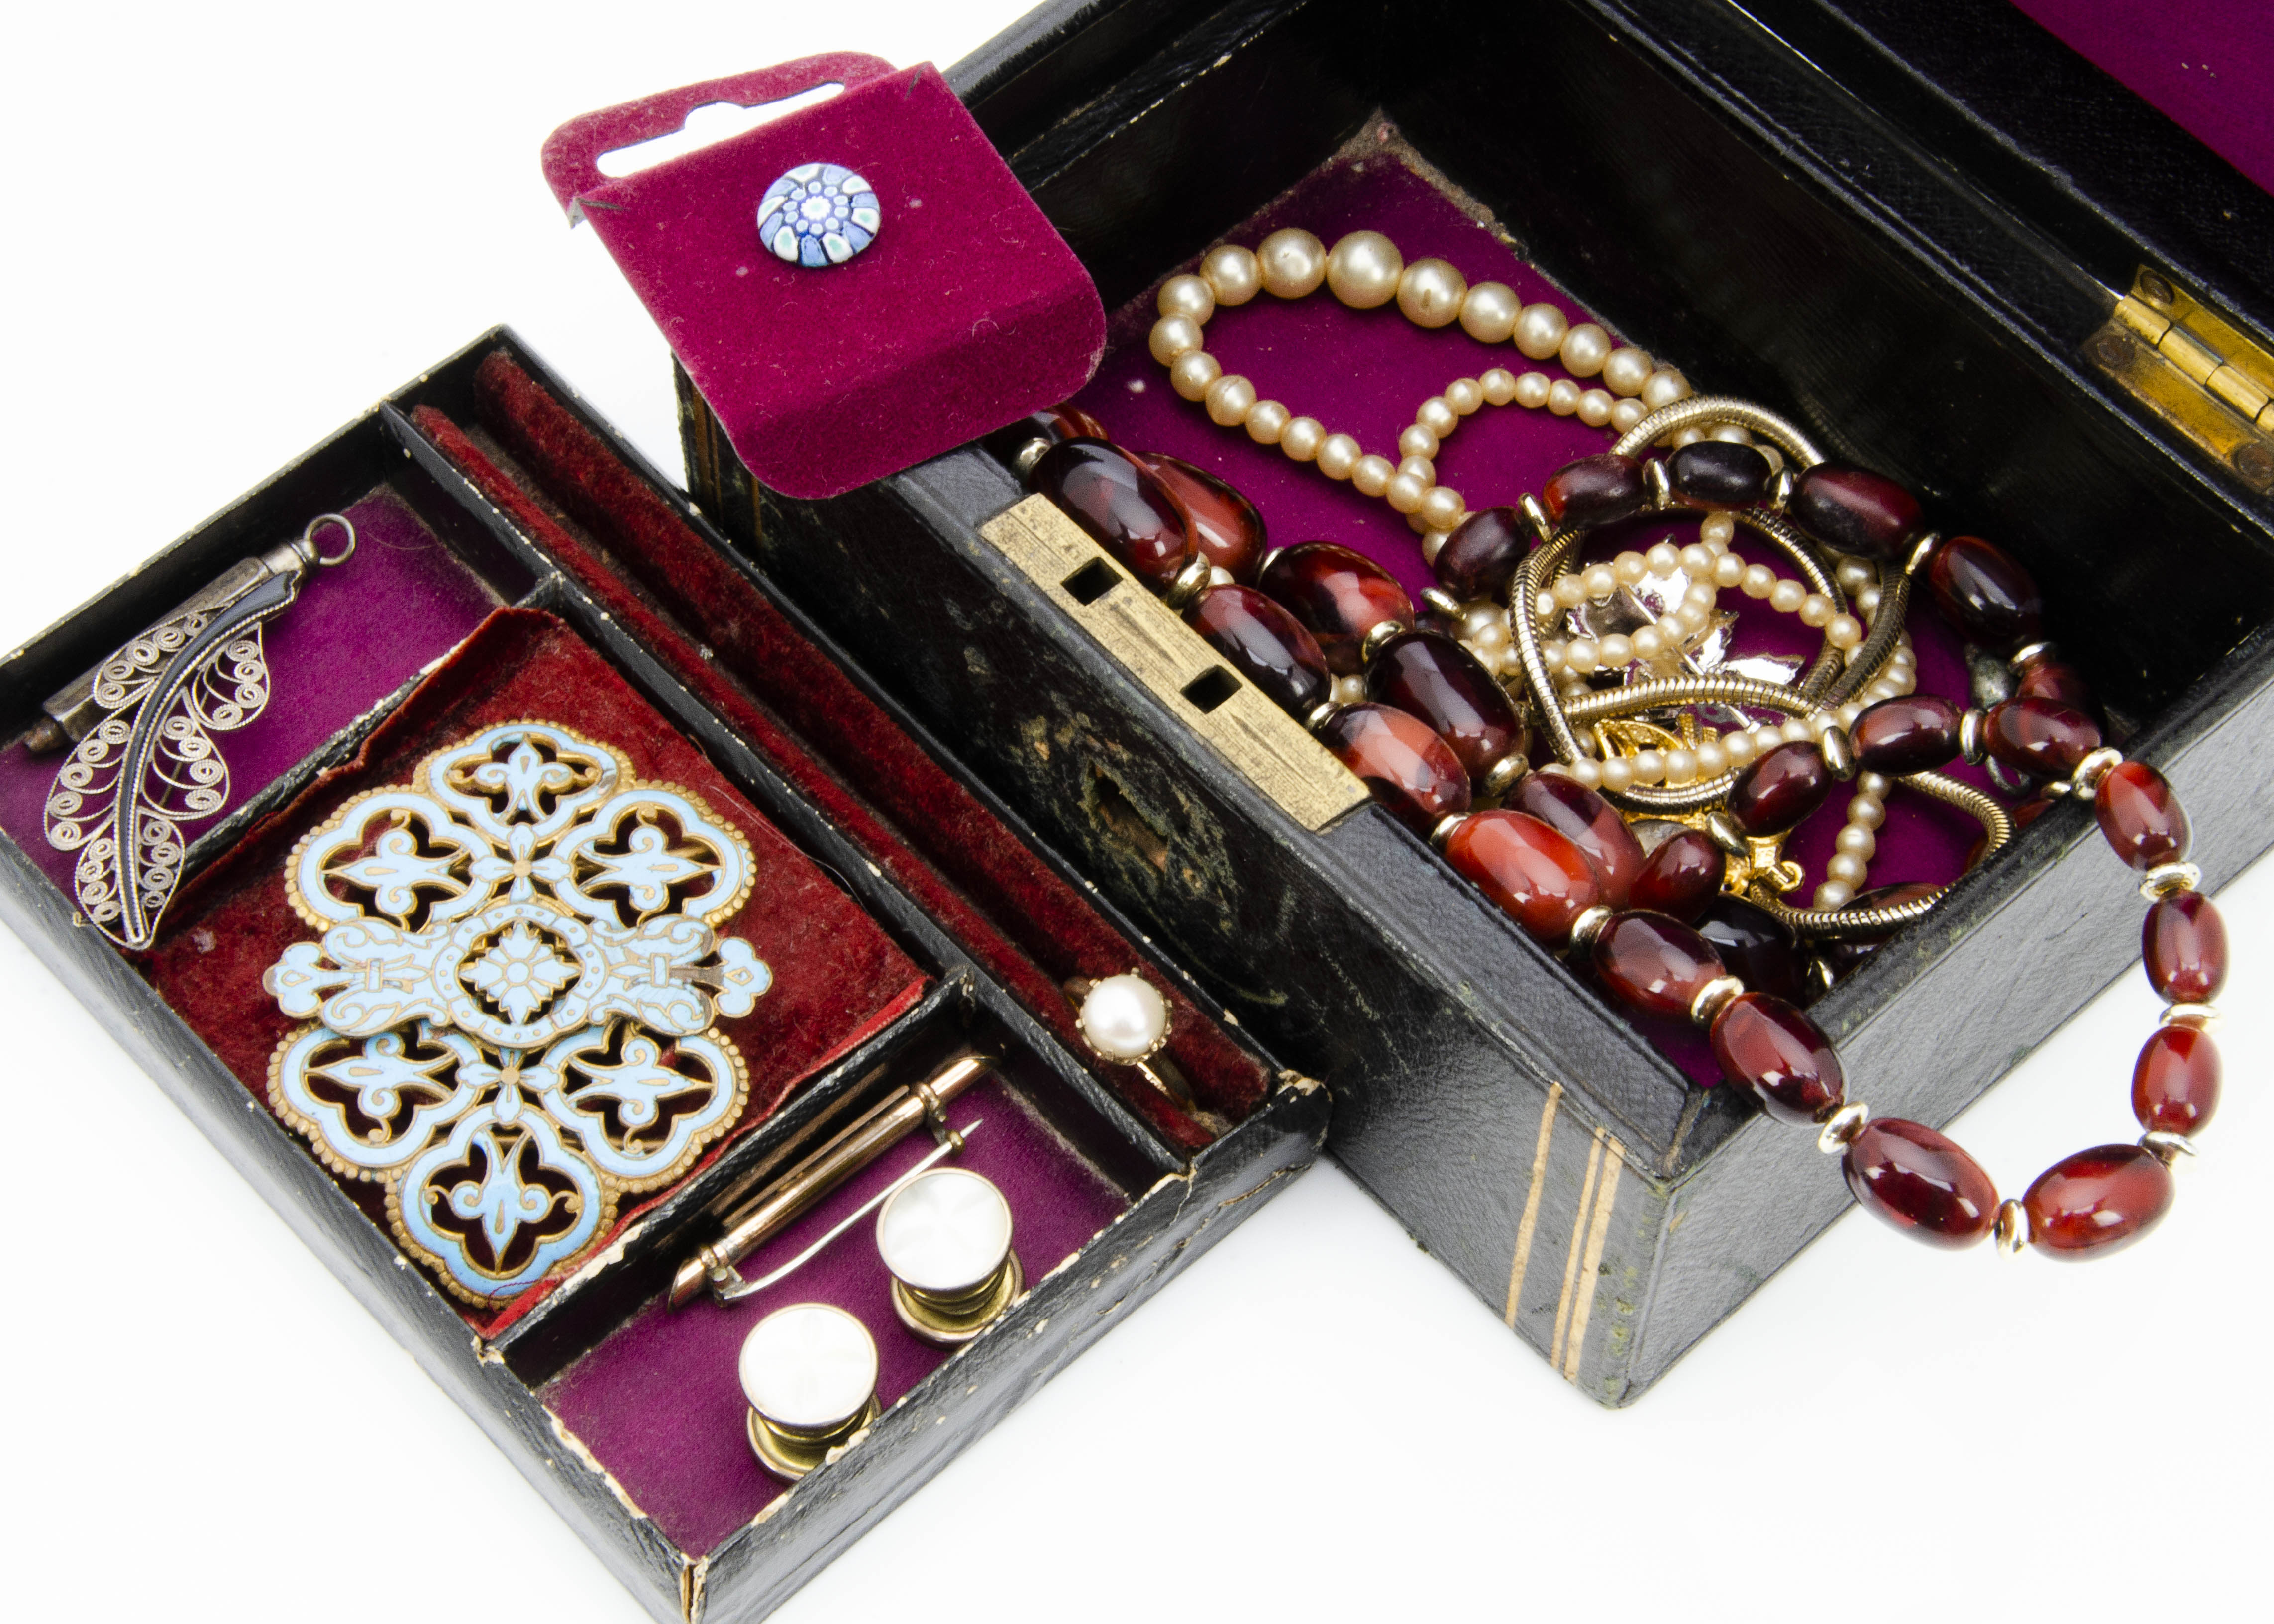 Lot 259 - A 19th Century leather jewellery box, with a base metal and enamel belt buckle, various simulated